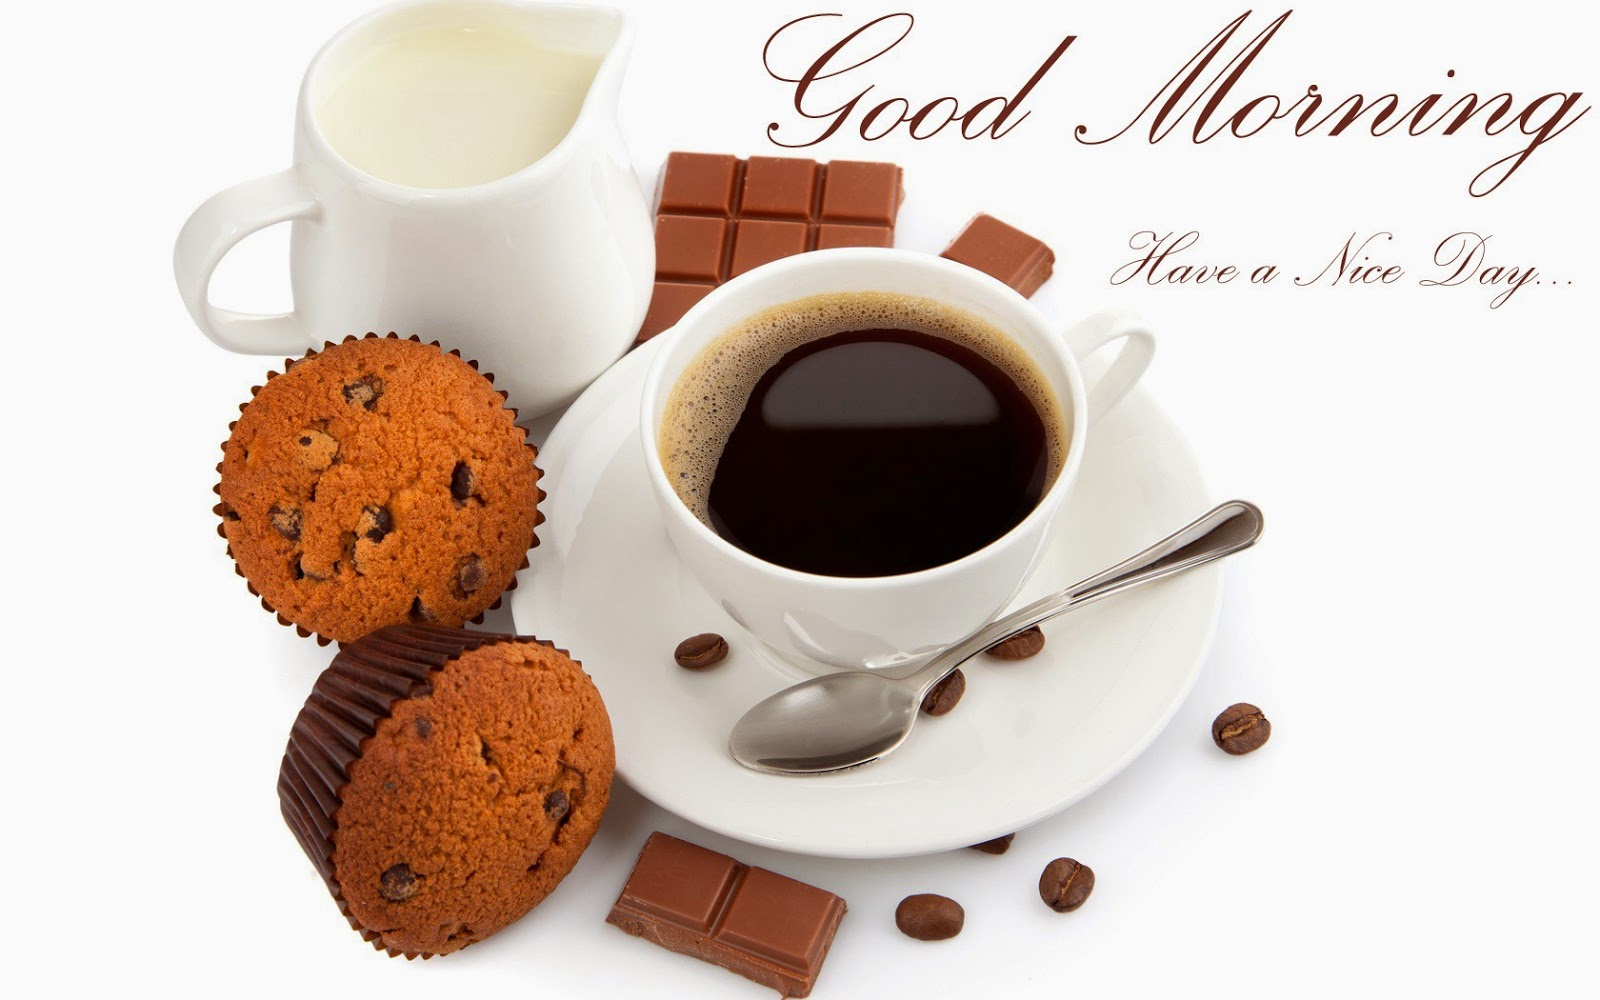 good morning have a nice day Beeakfast sms wishes image